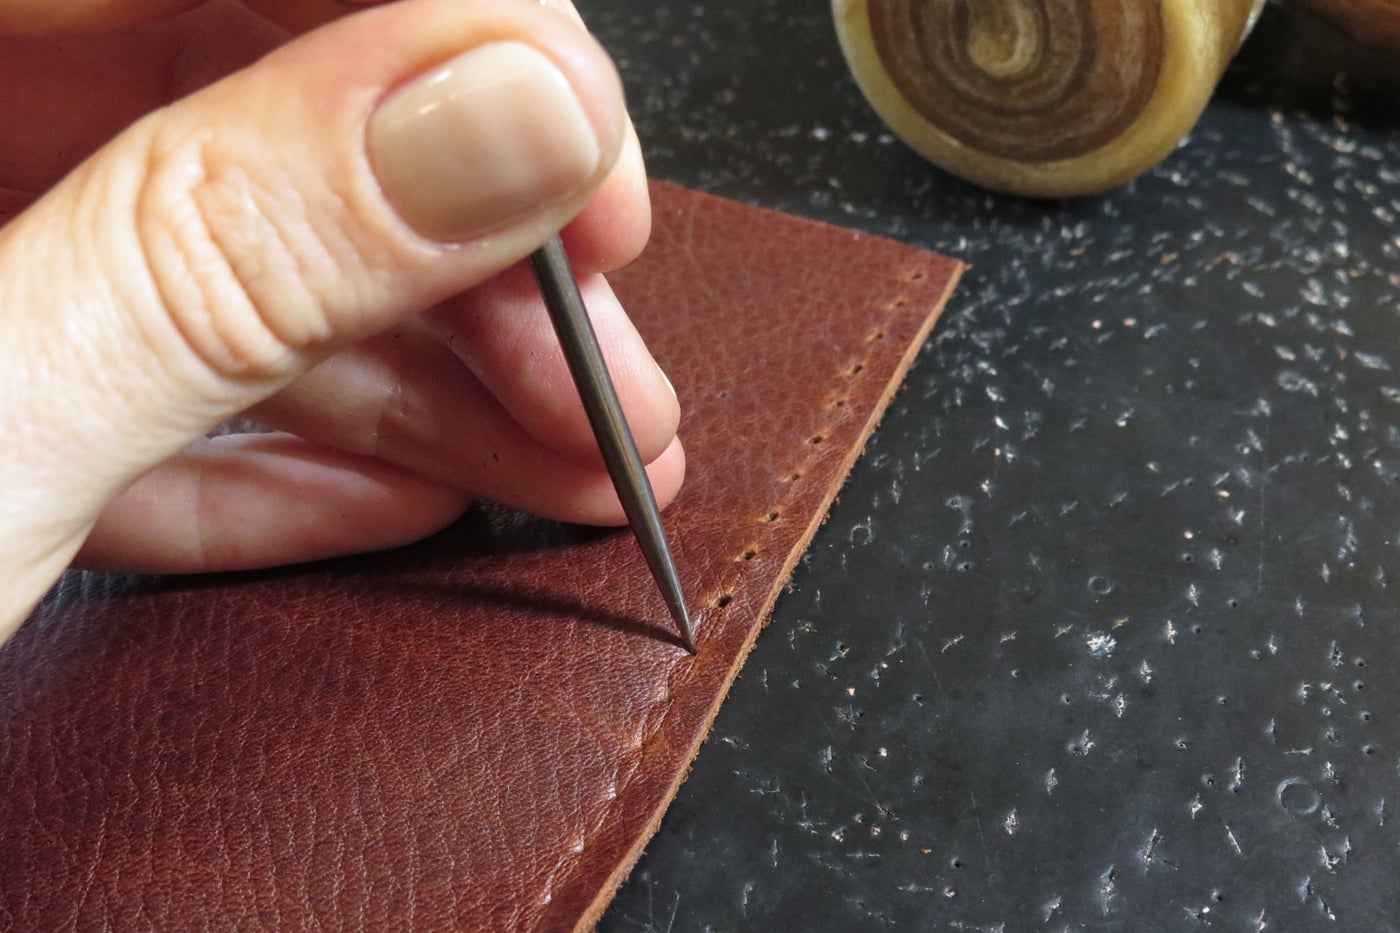 Punching Sewing Holes With an Awl